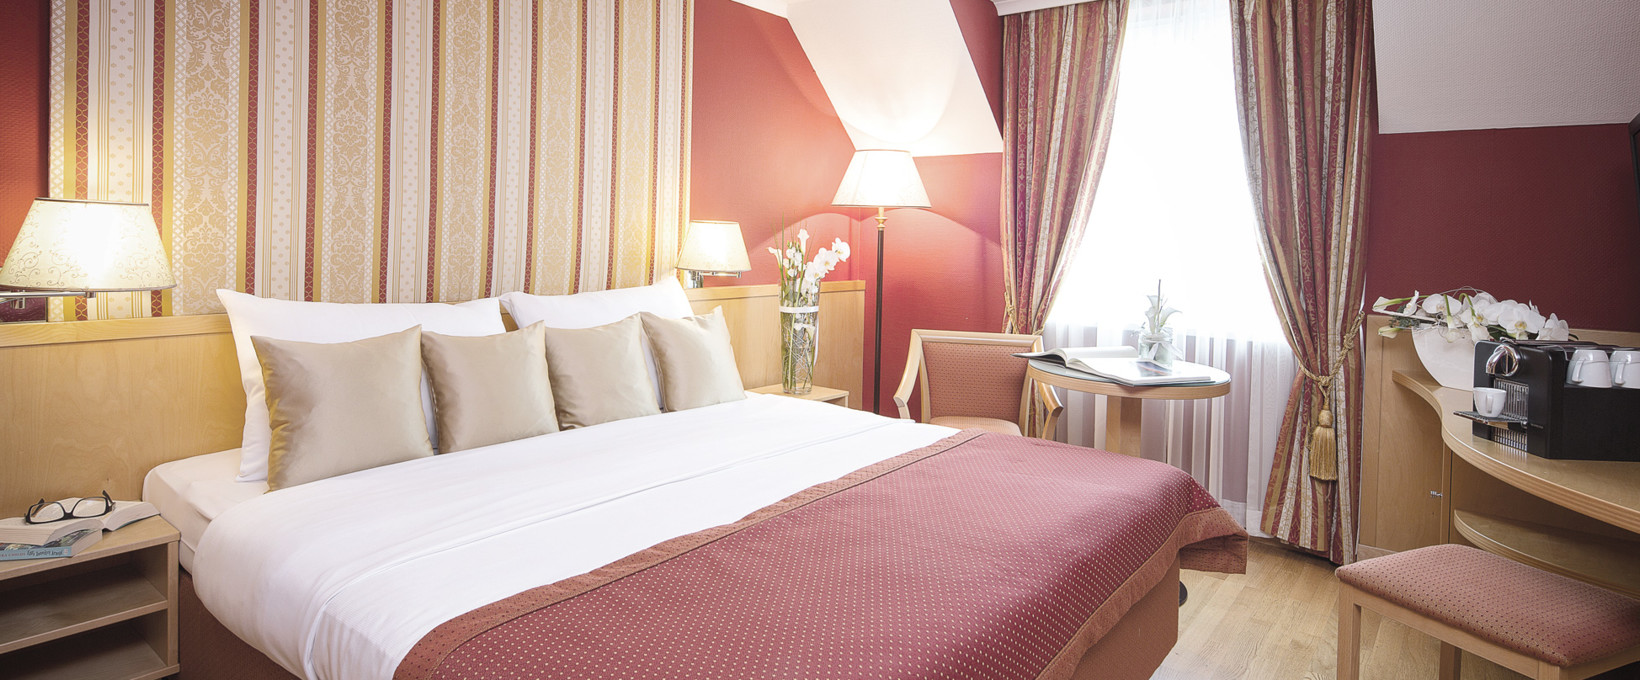 Executive Room with kingsize bed | Hotel Ananas in Vienna